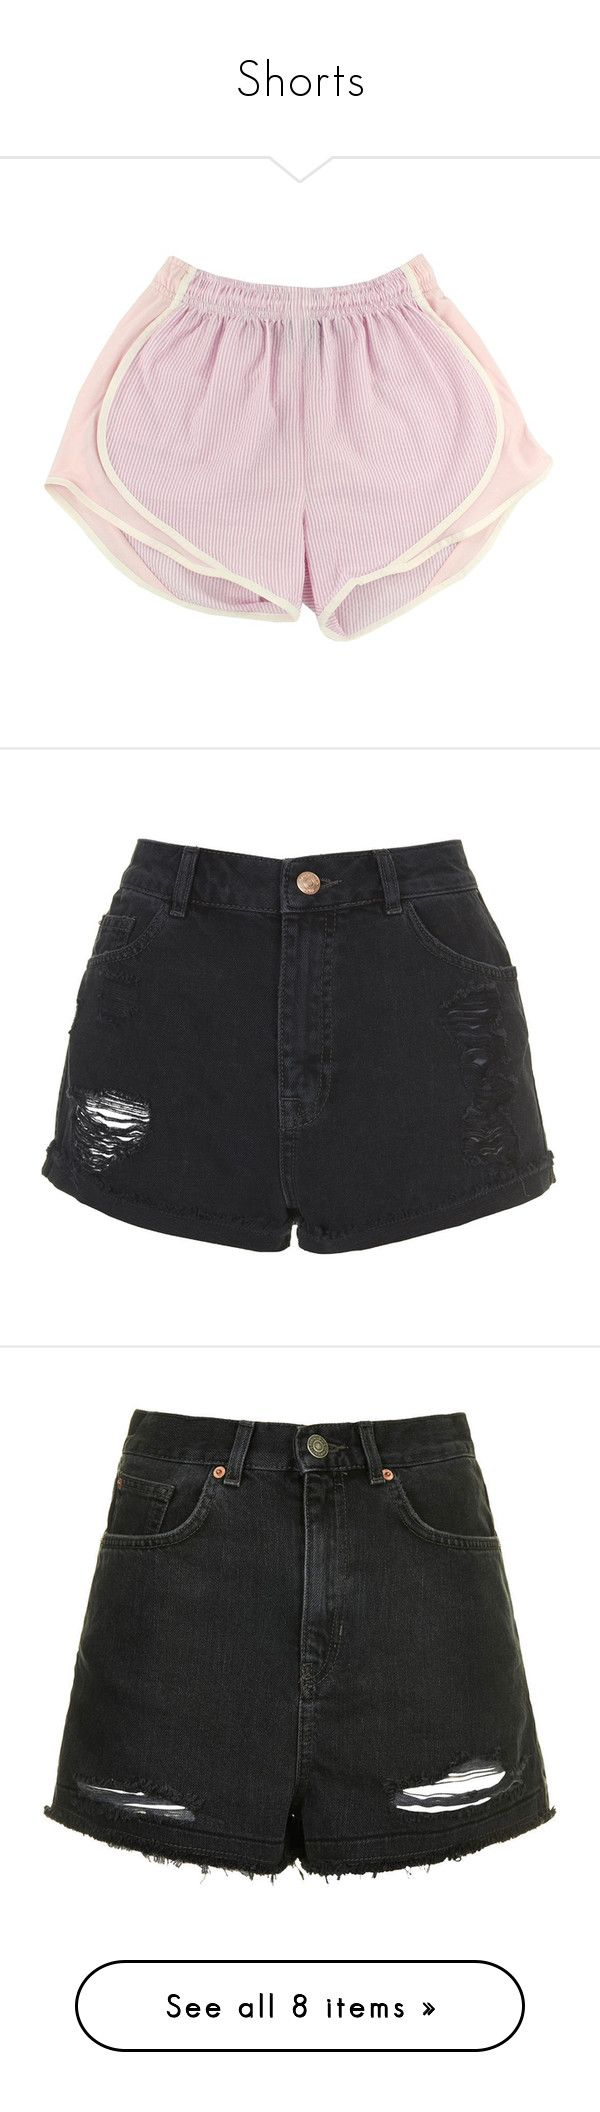 """Shorts"" by niisabel ❤ liked on Polyvore featuring shorts, clothes, bottoms, clothing - shorts, pants, short, black, hot short shorts, ripped short shorts and topshop shorts"